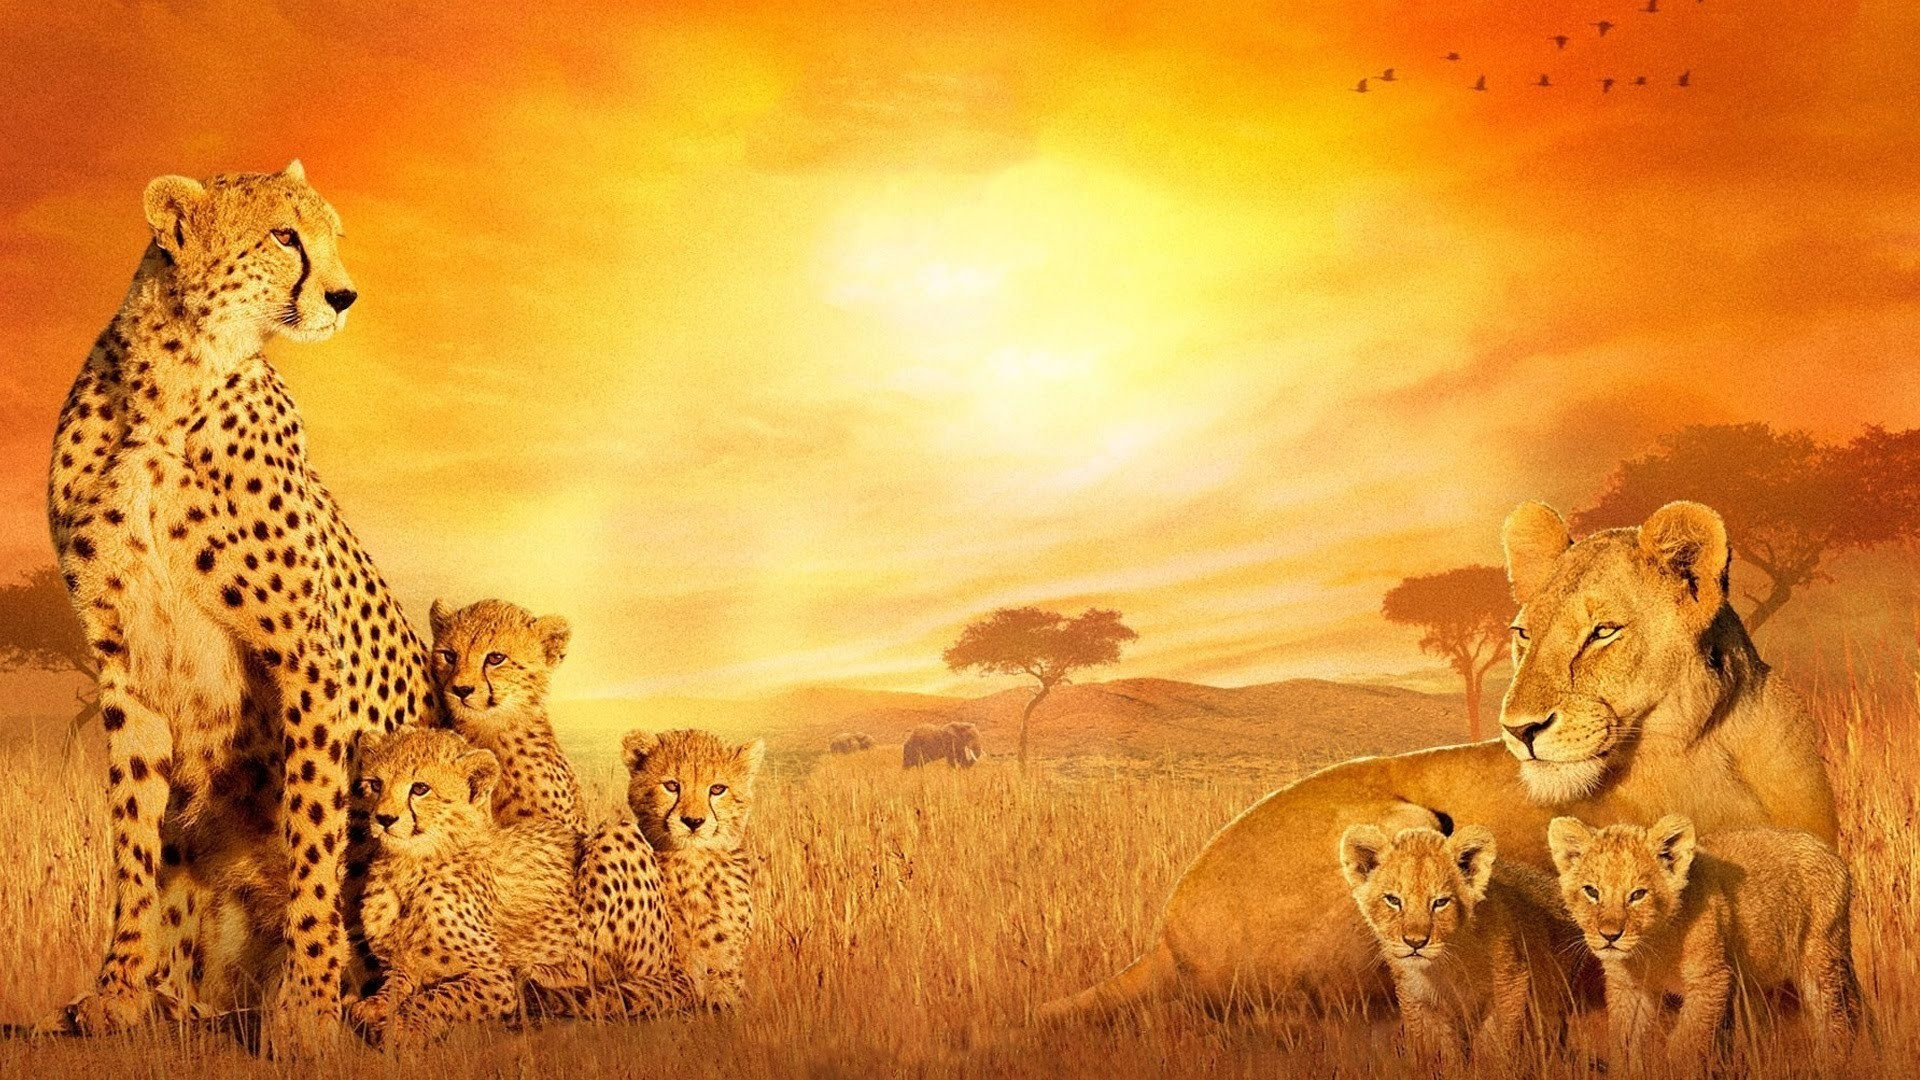 Hd Animal Wallpapers Hd Music Wallpapers: African Background ·① Download Free Stunning Wallpapers